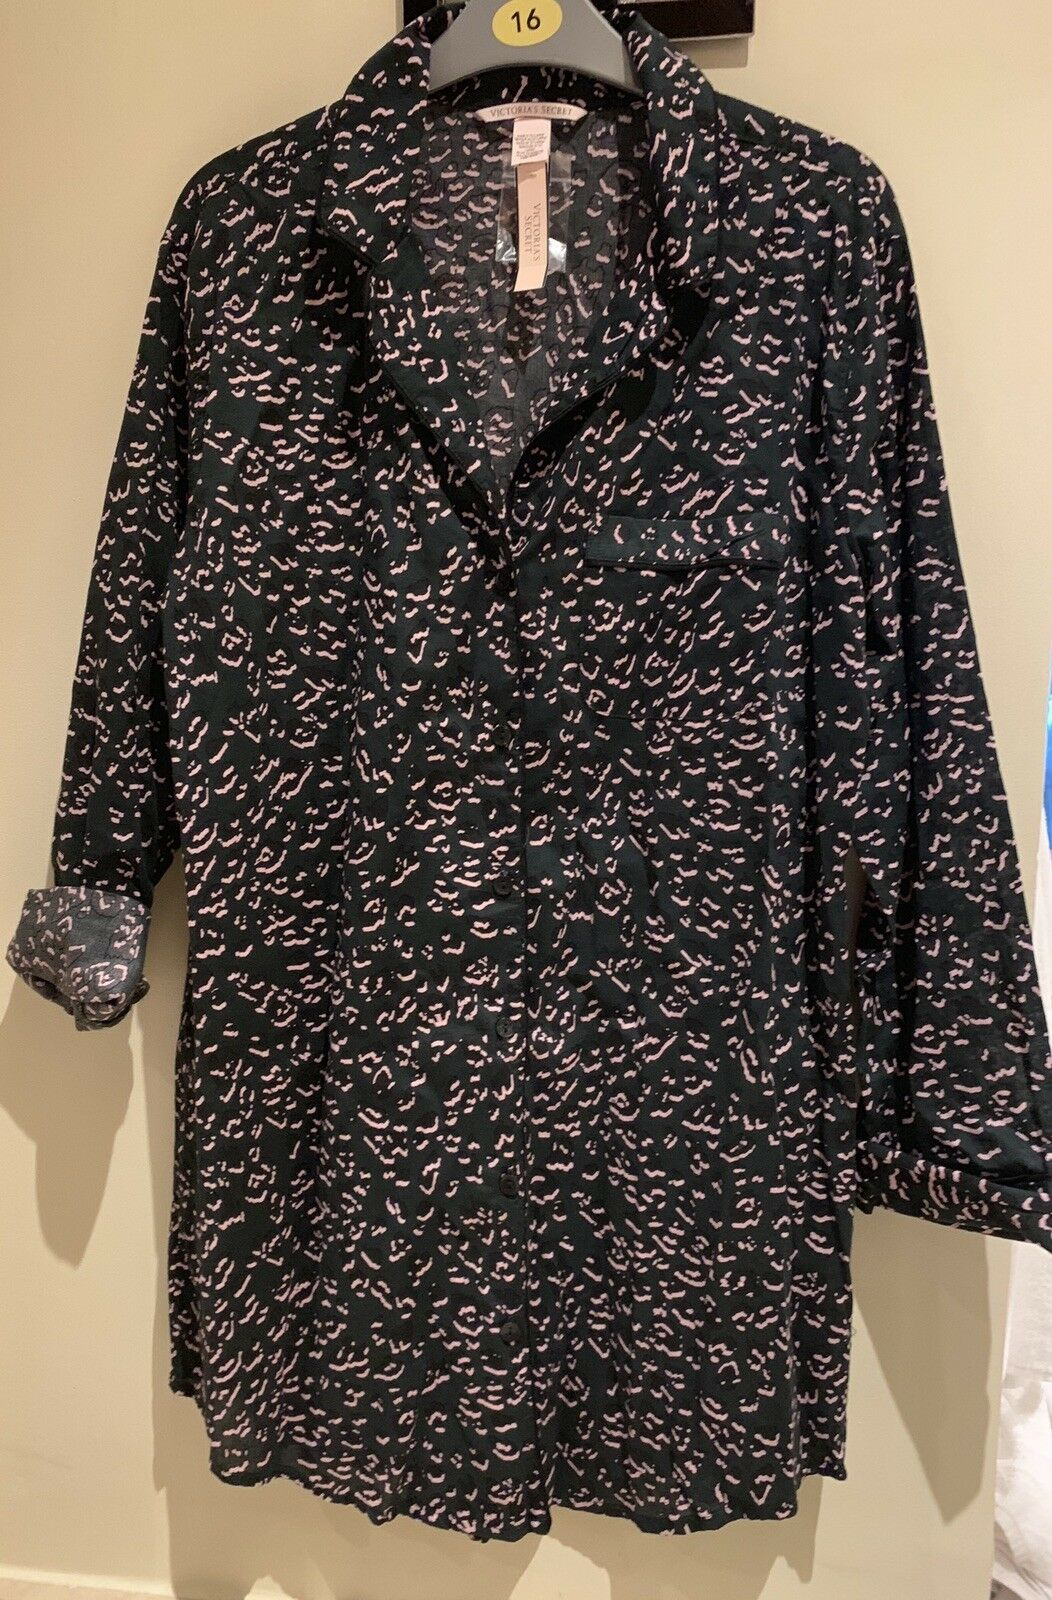 ff222ed97f08 Brand New Tagged Ladies Victoria's Secret Button Front Night Shirt Size Xs